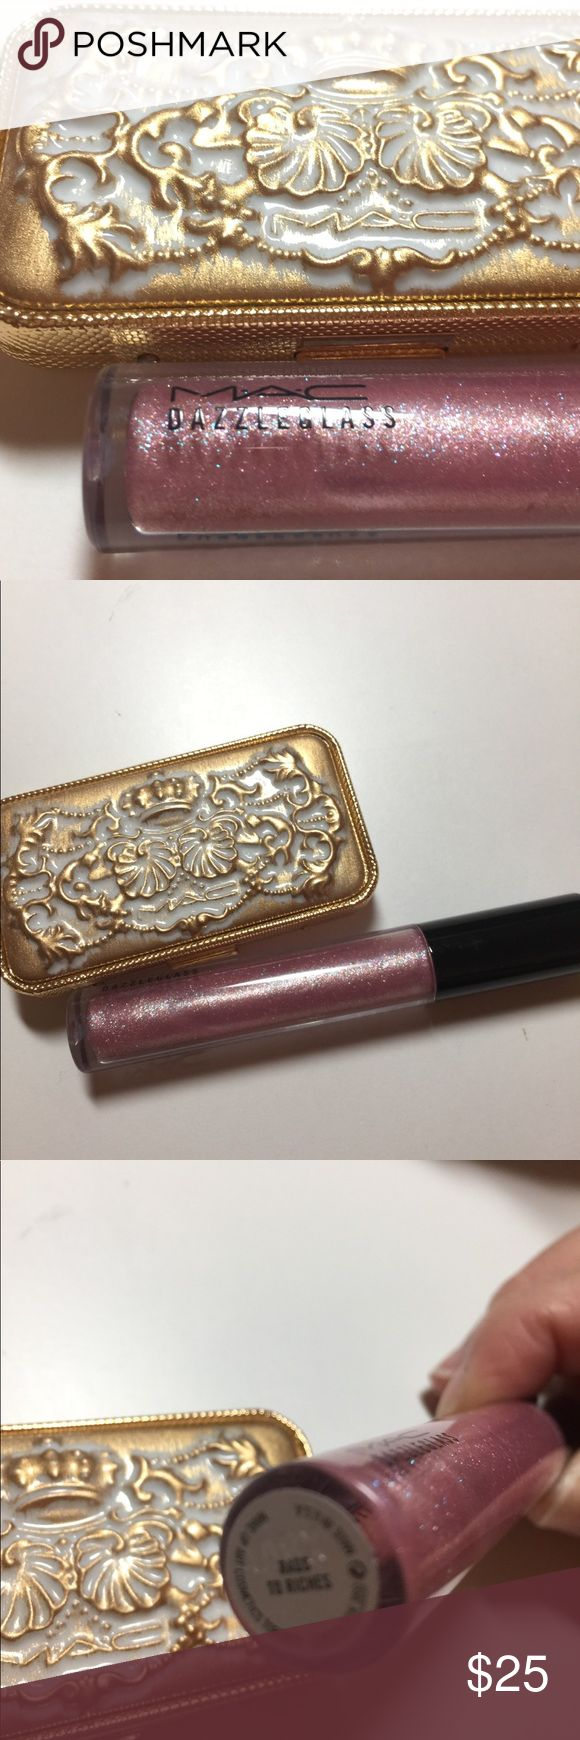 MAC lipstick and  dazzle glass lip gloss combo Royal asset palette never touched 3 Tan lips 1 gloss pure pomp 2 lipstick sceptre and privee  one dazzle glass rags to riches. barely used MAC Cosmetics Makeup Lip Balm & Gloss